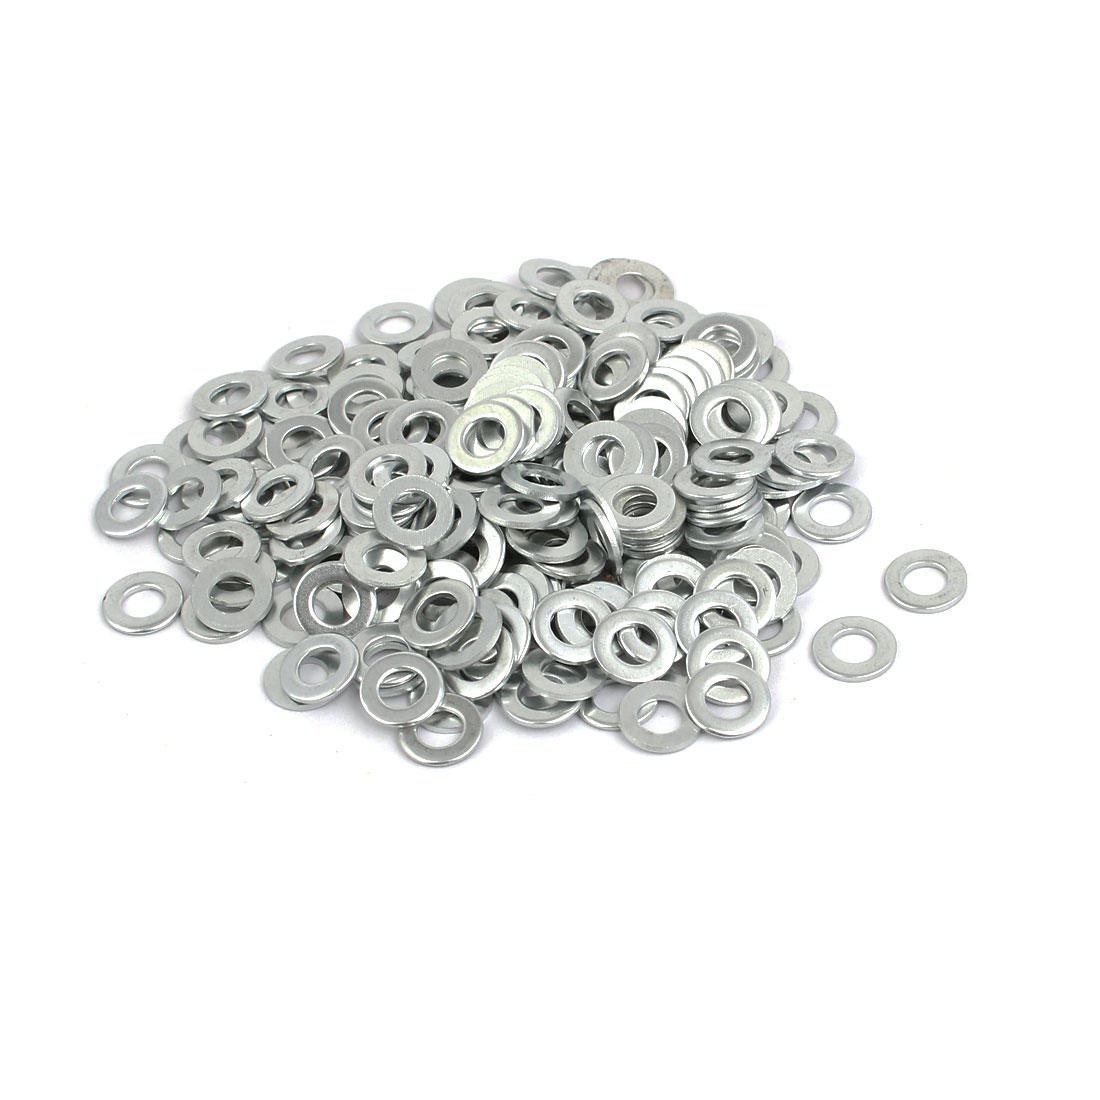 M5 Carbon Steel Zinc Plated Flat Pads Washer Gasket Spacer Silver Tone 300pcs